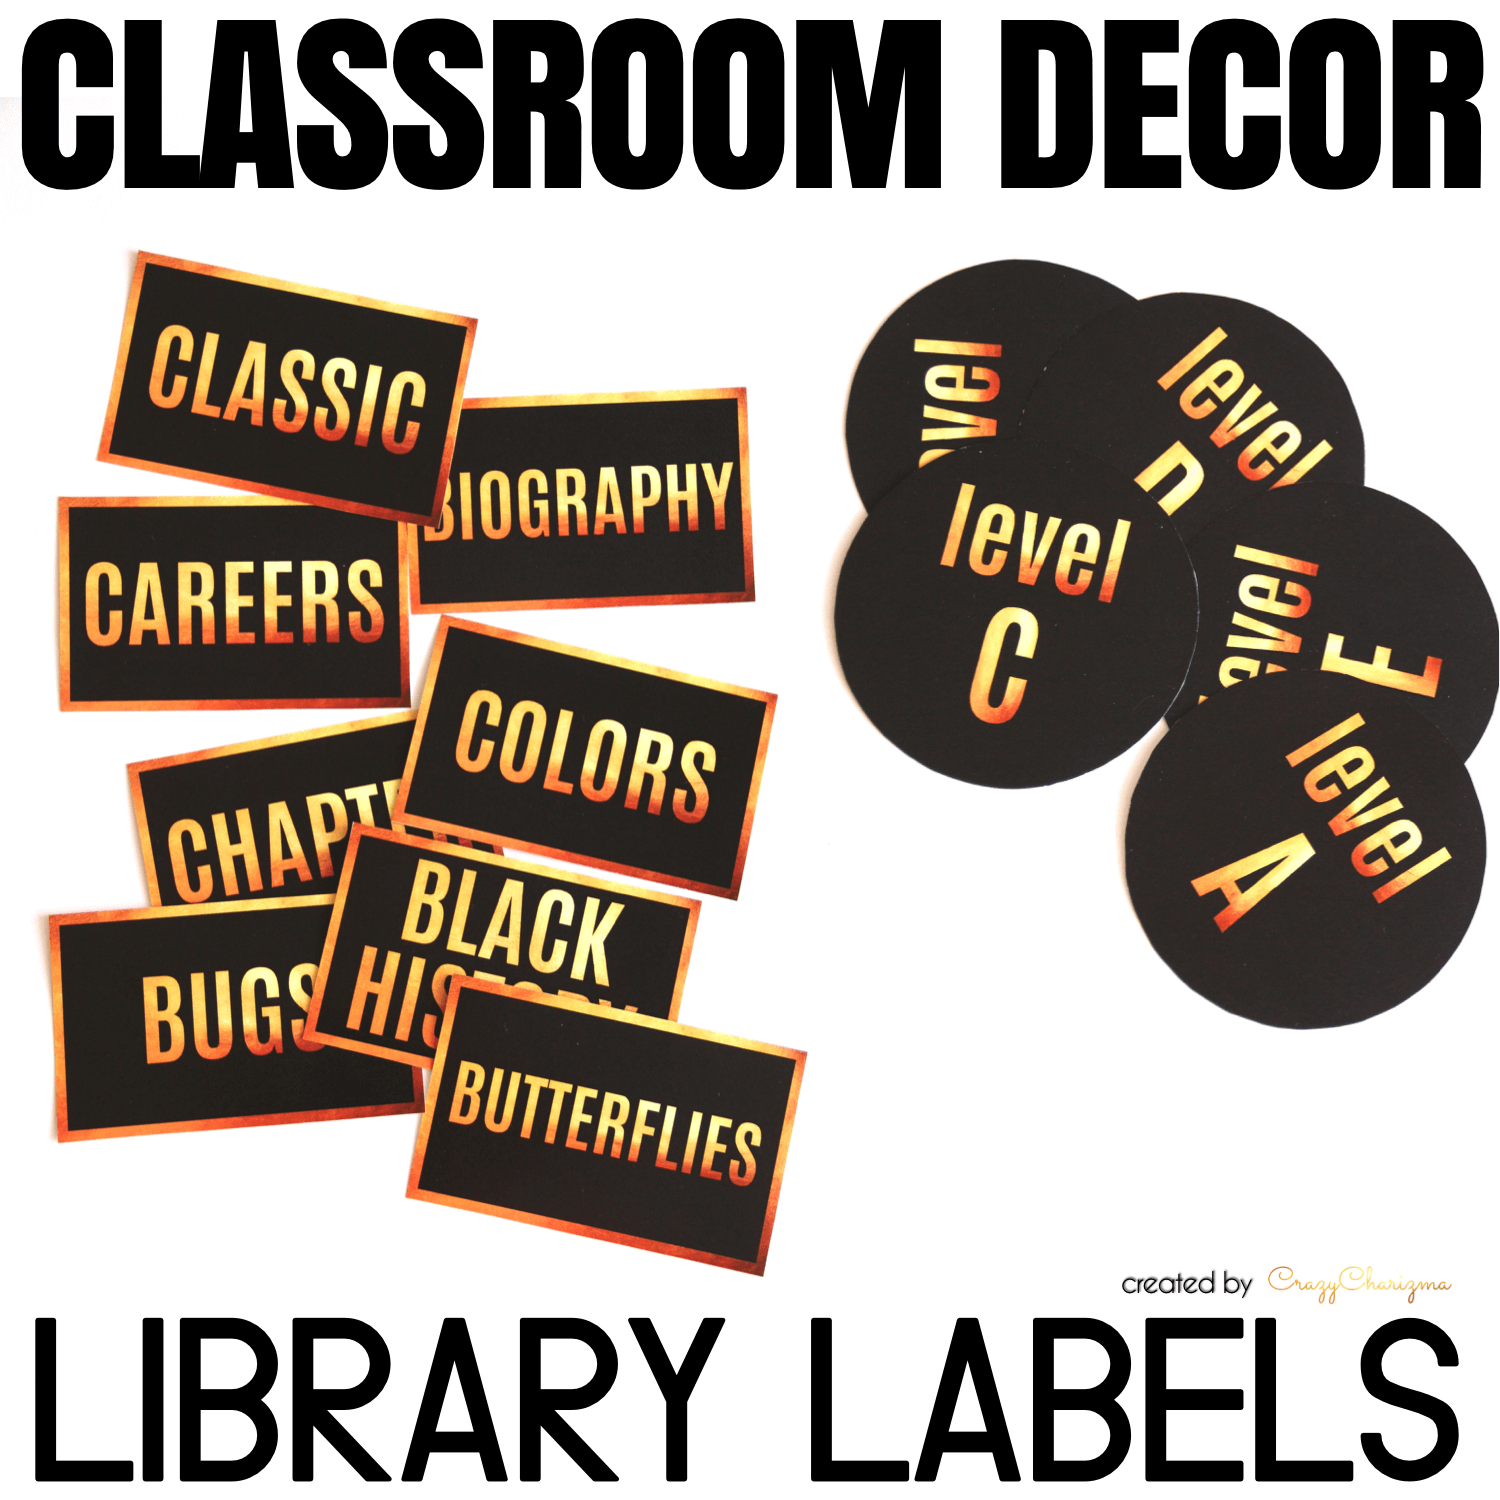 Decorate your classroom this year with this stylish BLACK and GOLD decor set. Find inside vibrant and bright Library Labels and Tags.